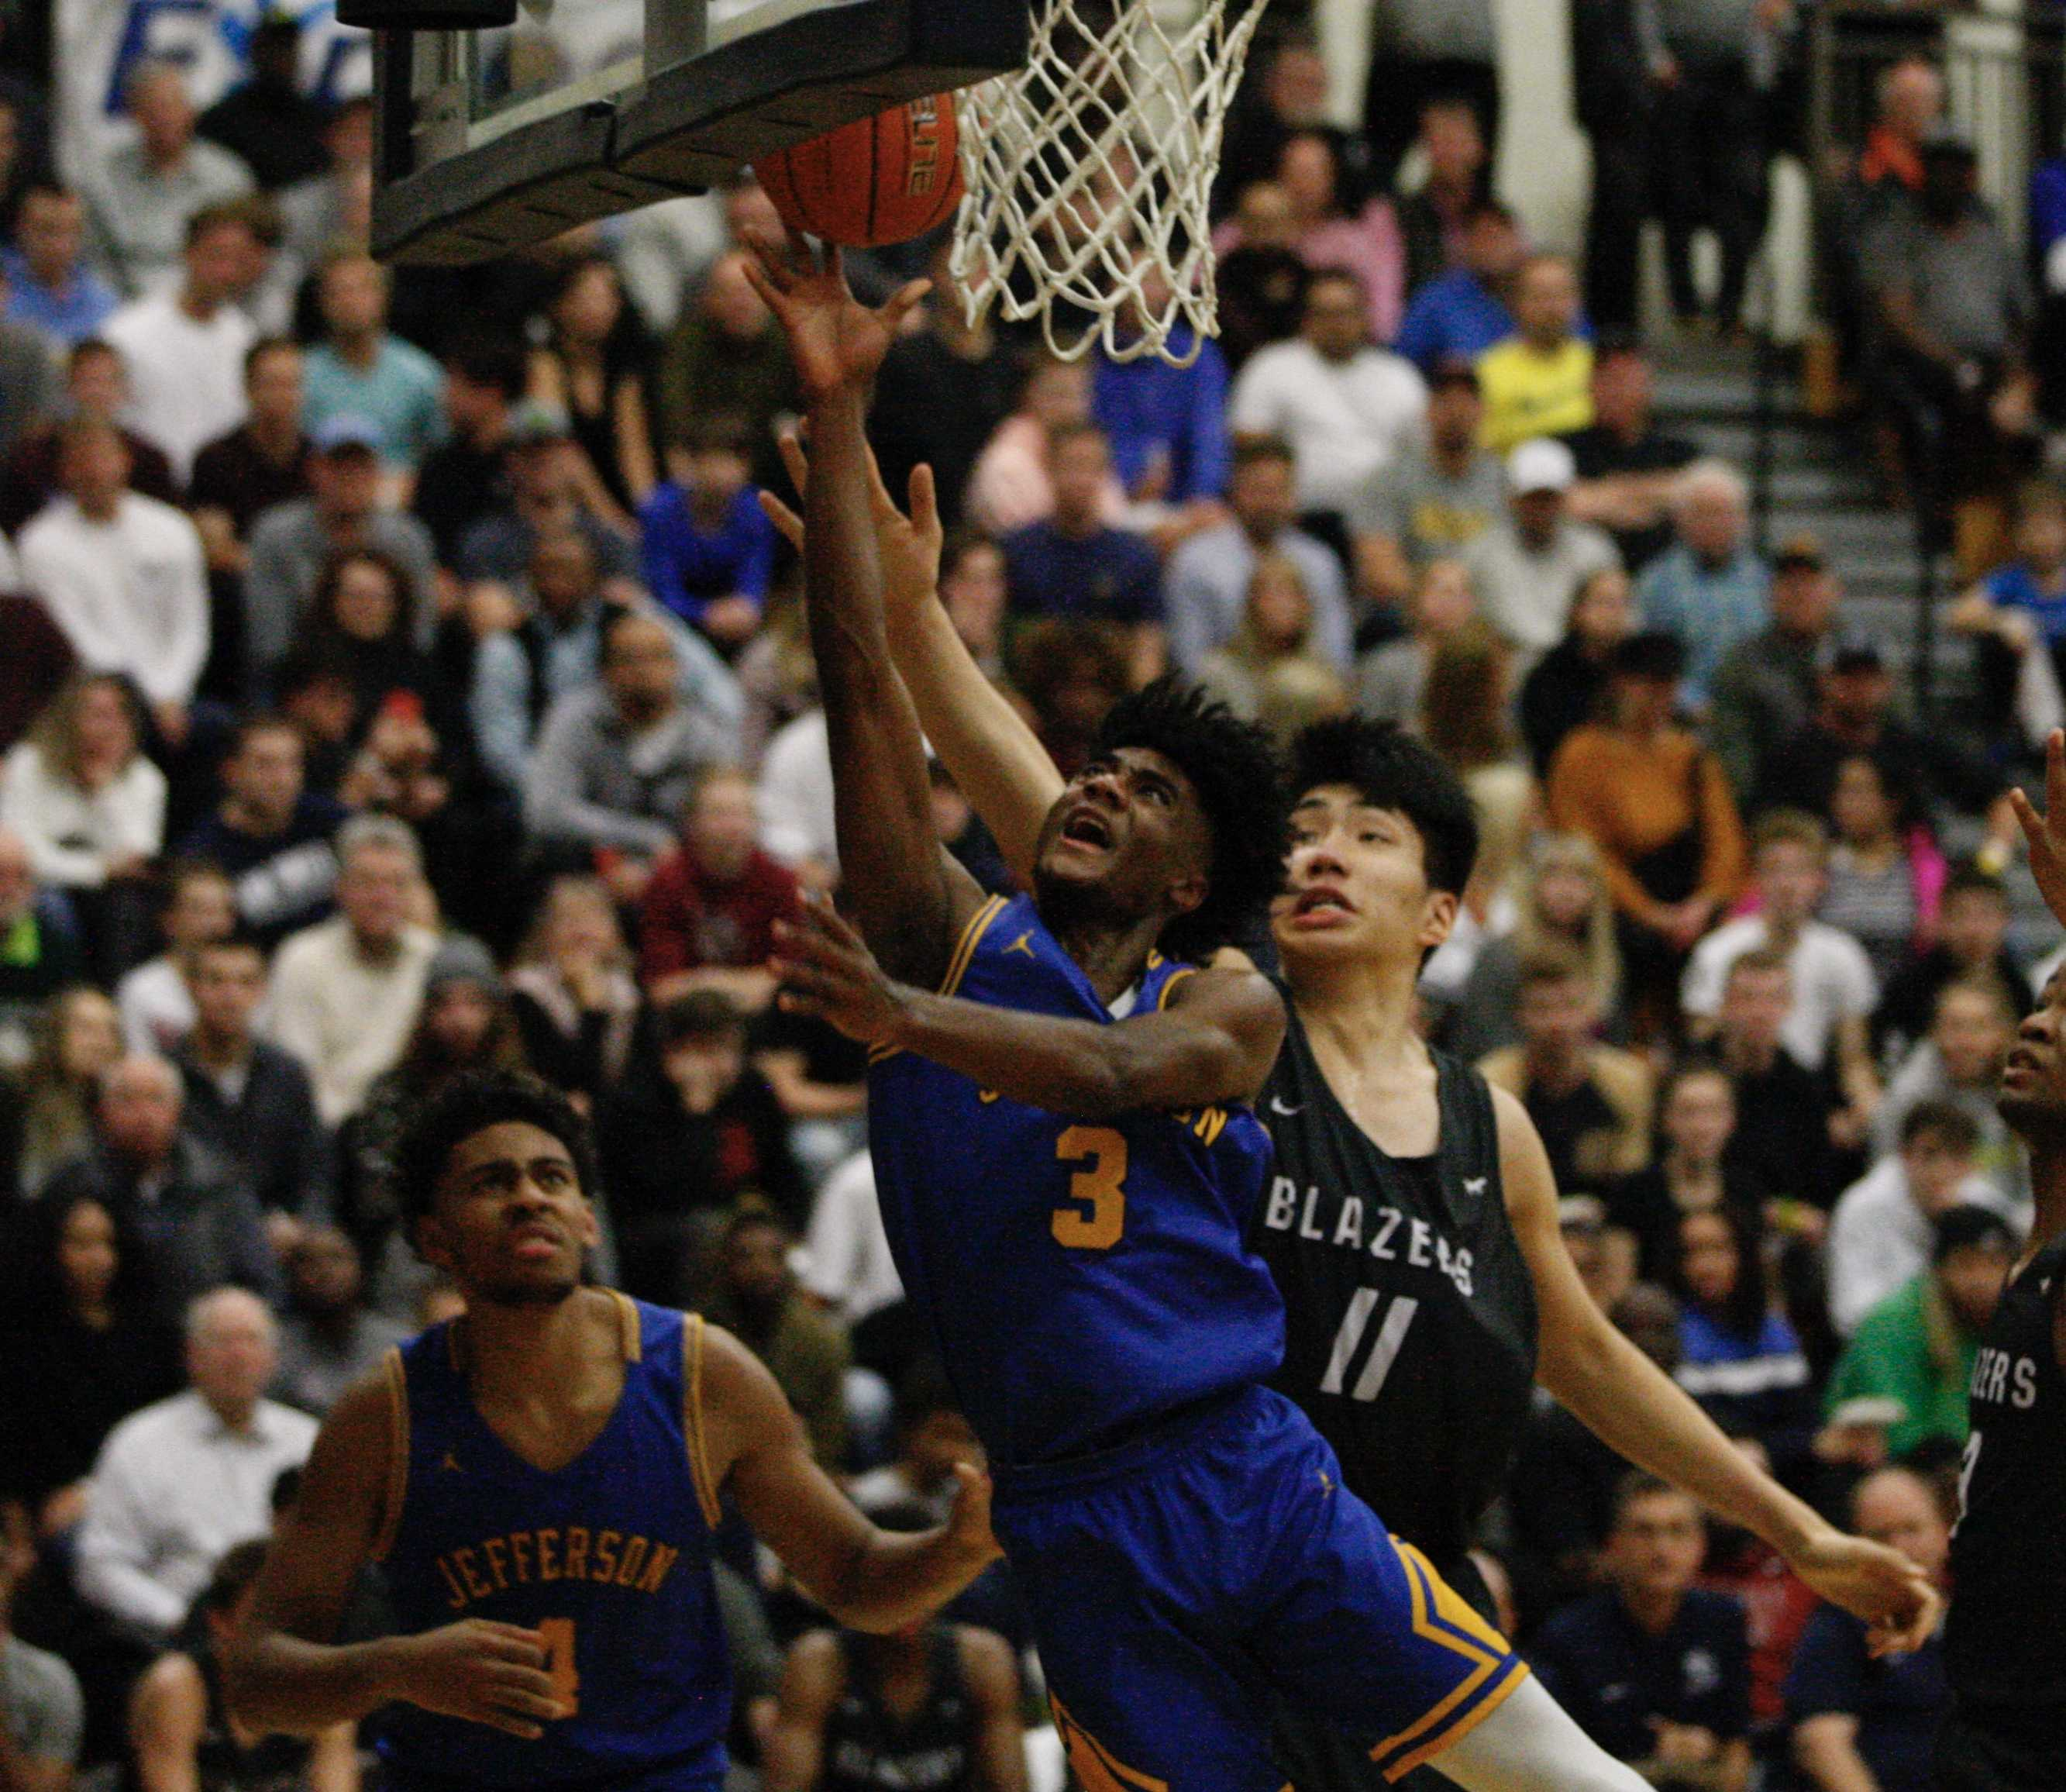 Jefferson's 6-4 Jalen Brown slashes past 7-2 Jia-Hao Yu of Sierra Canyon on his way to a layup. (Photo by Norm Maves Jr.)